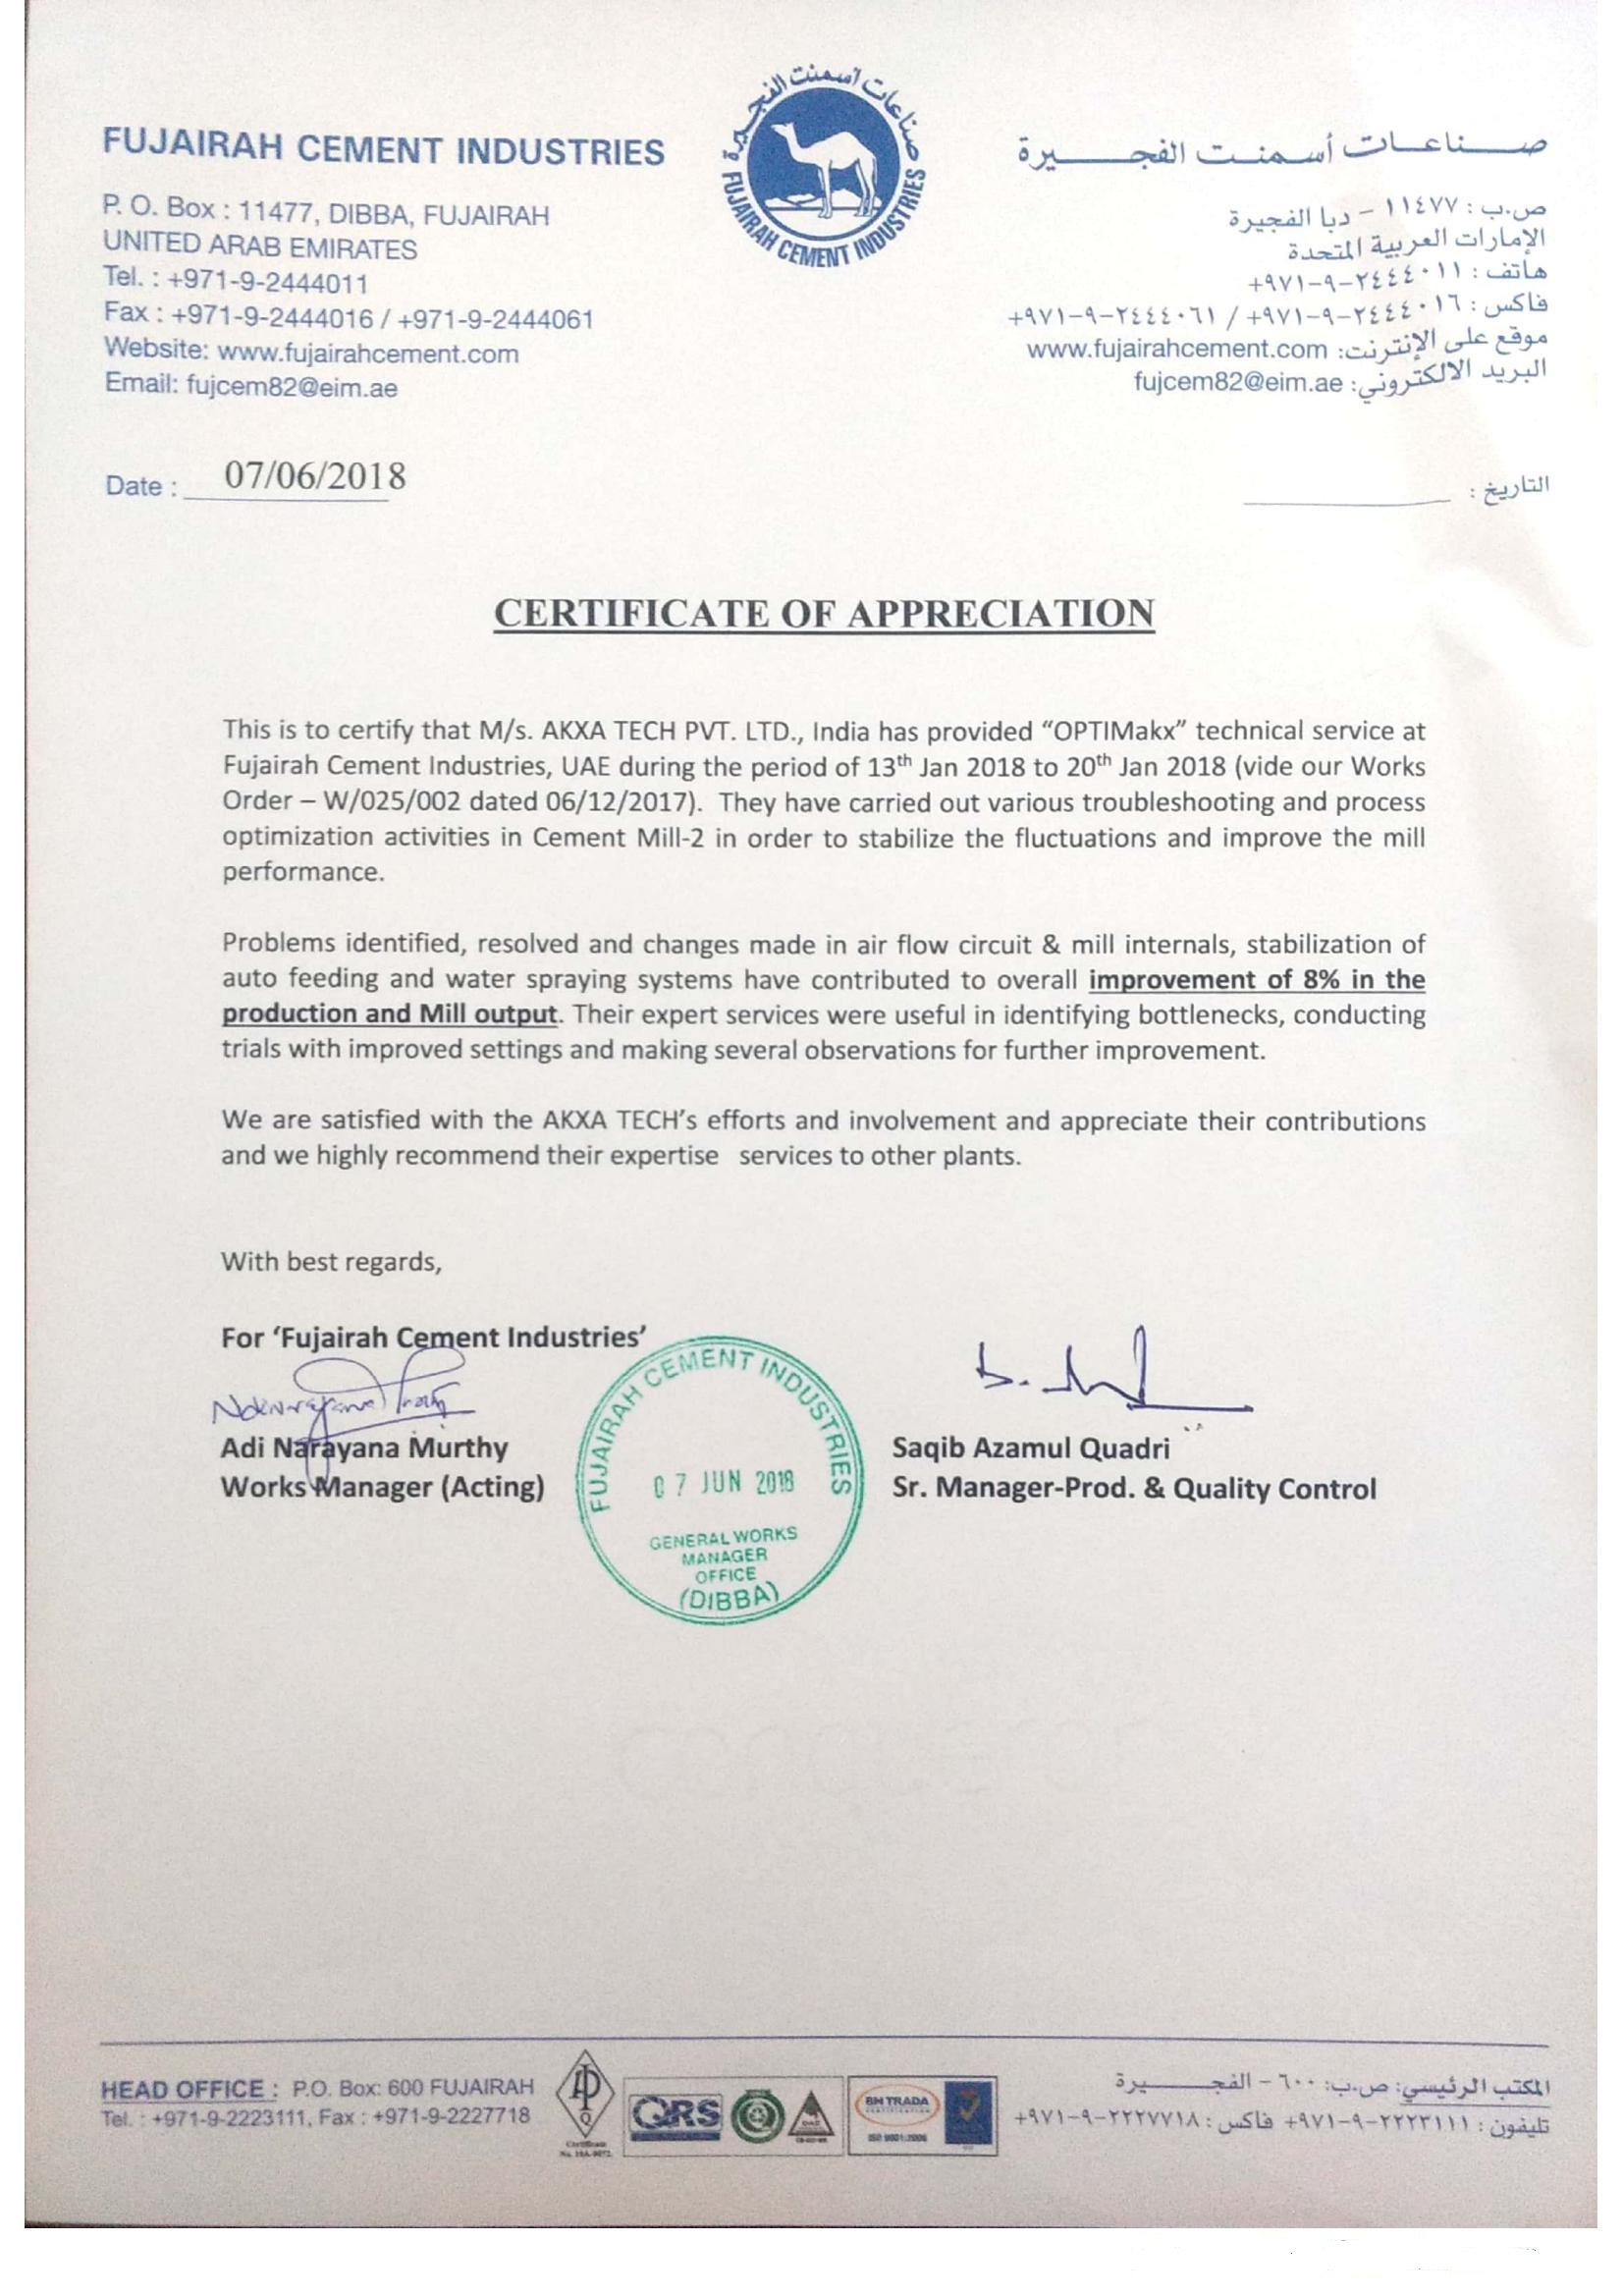 FCI Performance Letter